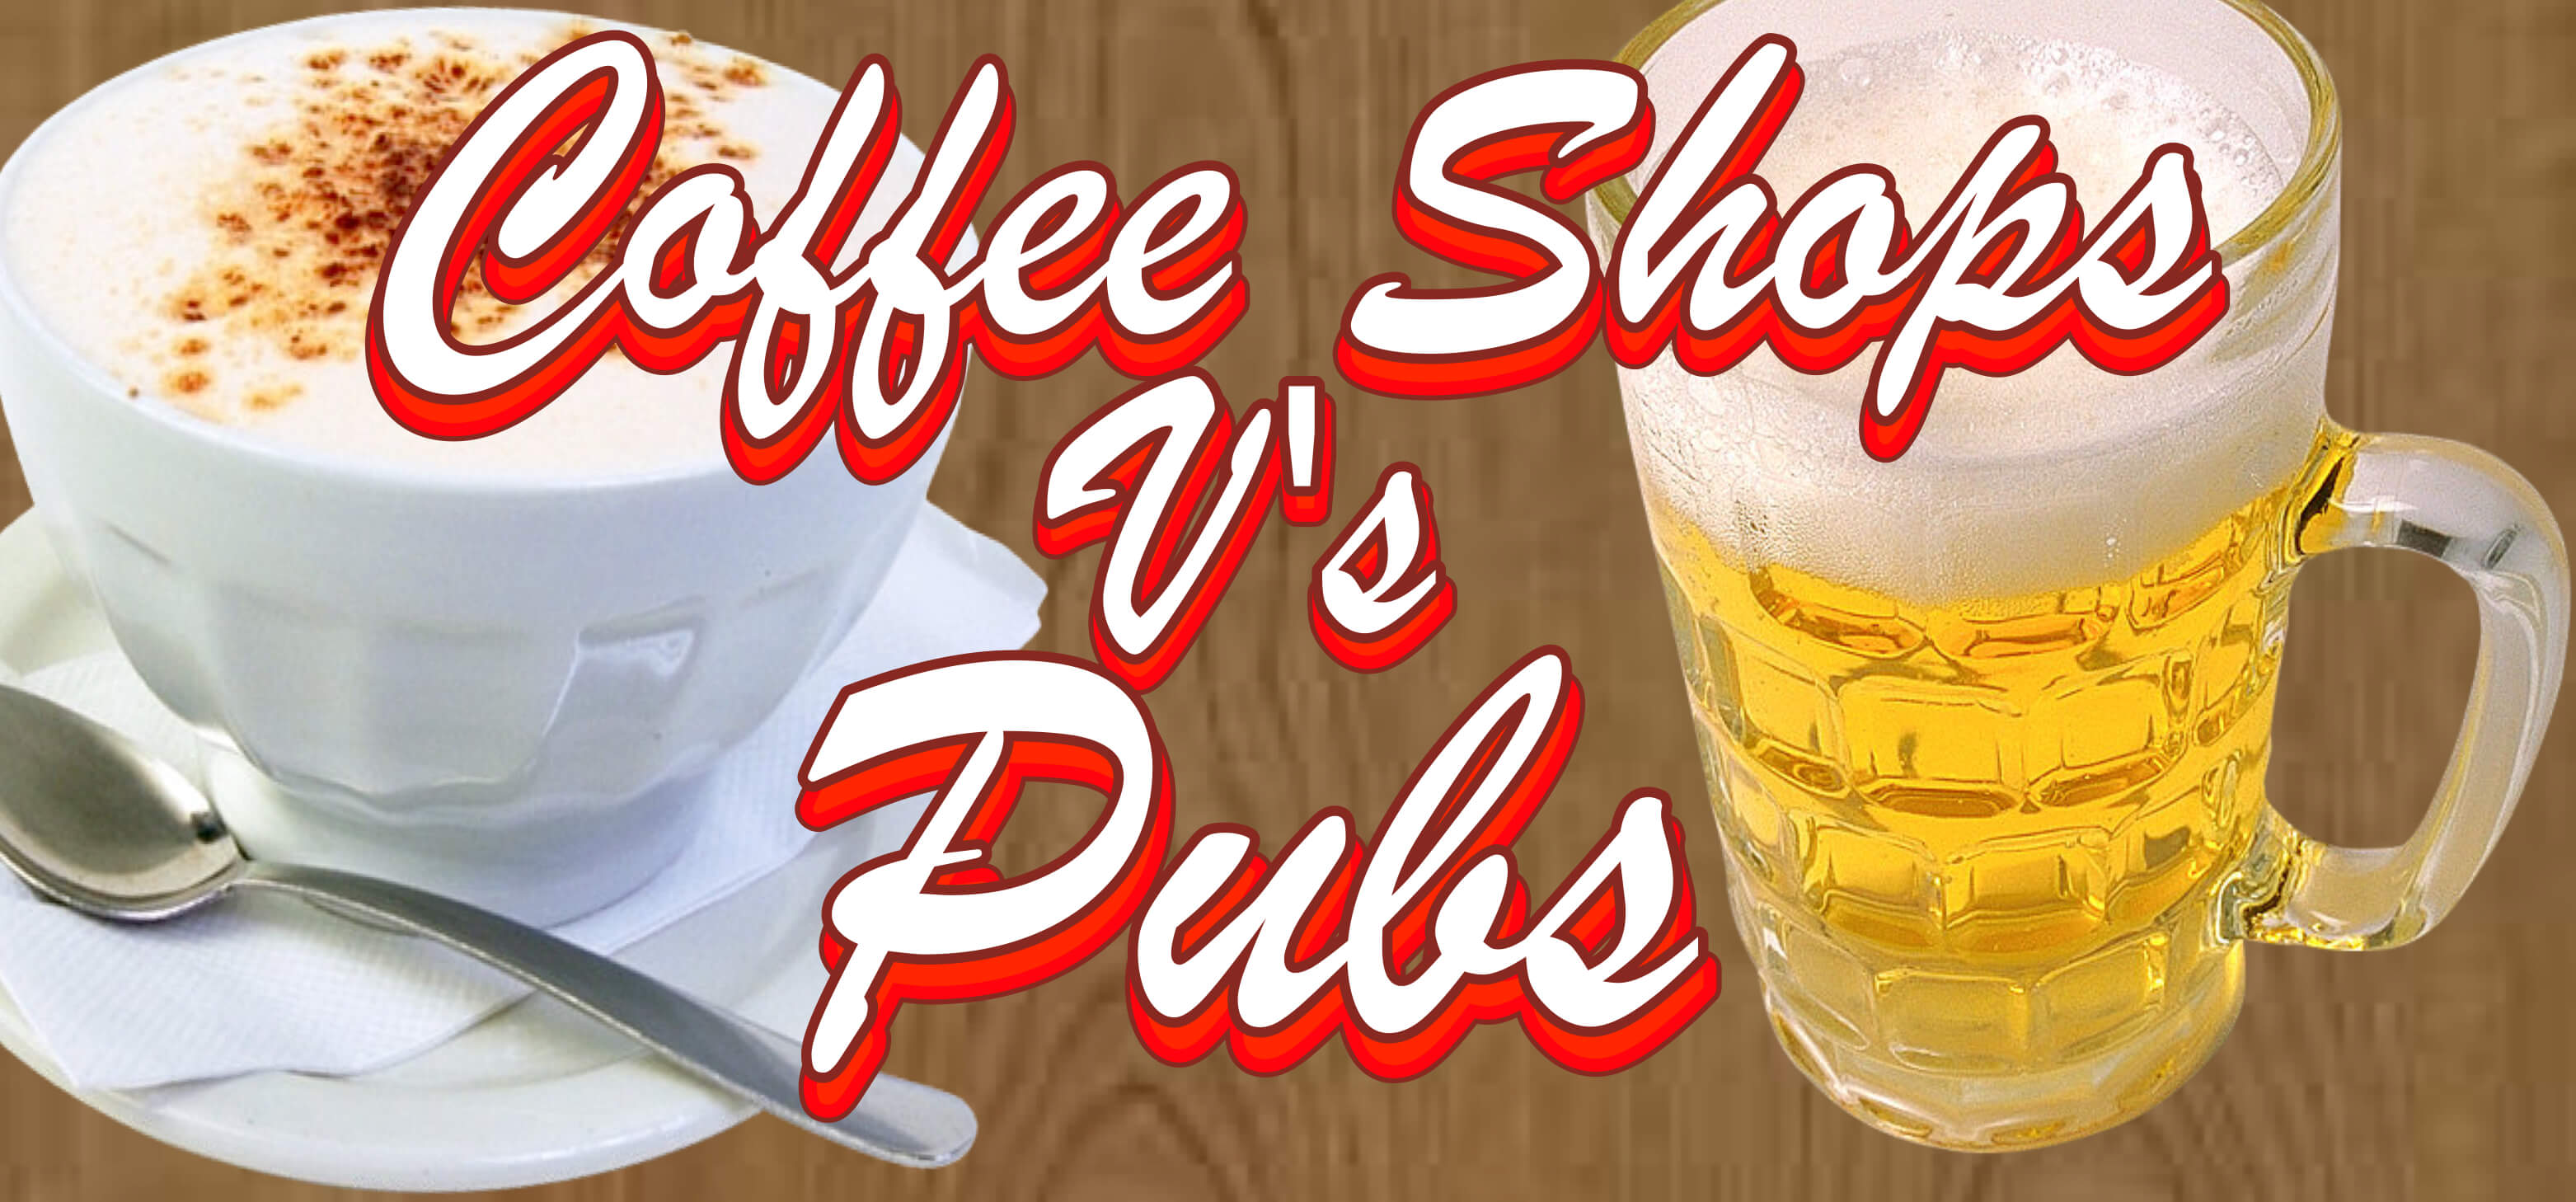 Coffee v Pub, what can we learn